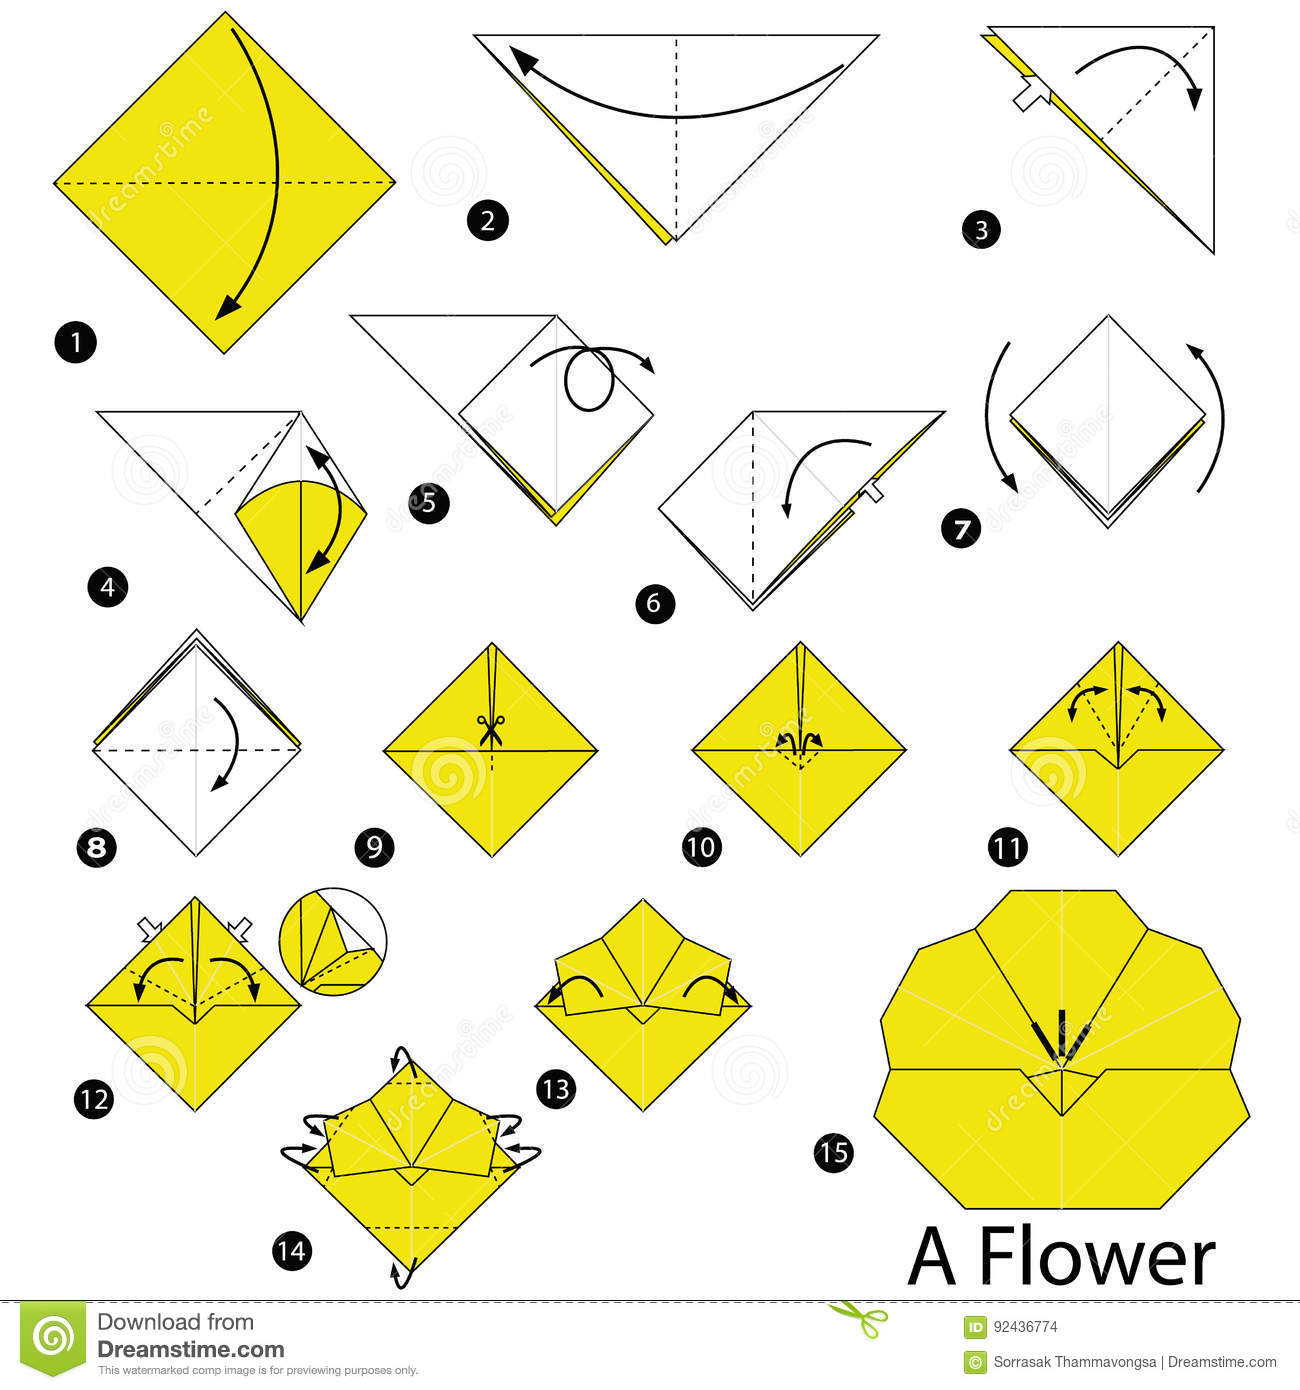 Origami Lotus Flower Instructions Pdf Choice Image Wallpaper Hd A4 Psychologyarticlesfo